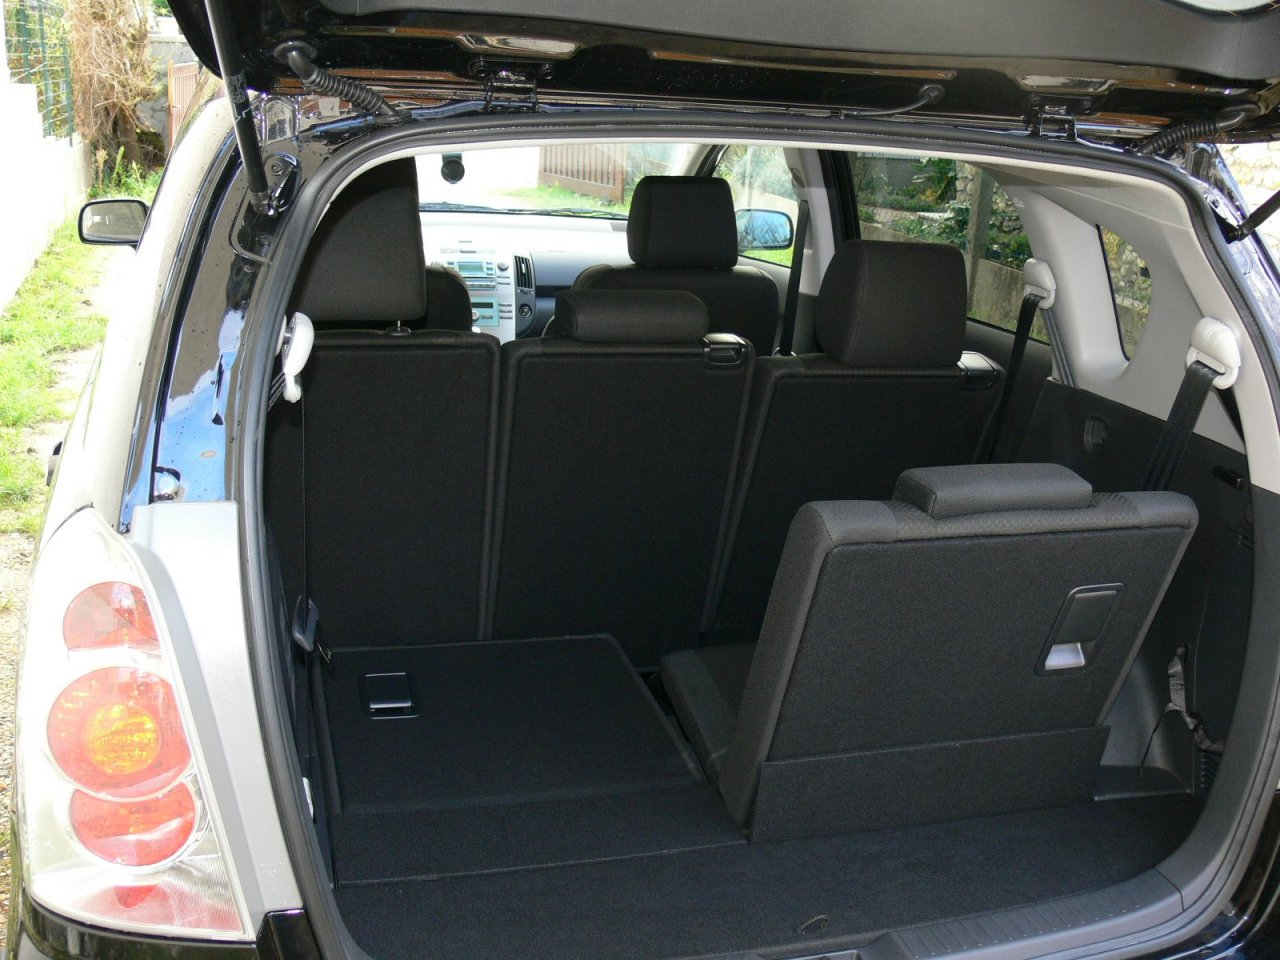 apr s ma toyota corolla verso mon grand c4 picasso. Black Bedroom Furniture Sets. Home Design Ideas